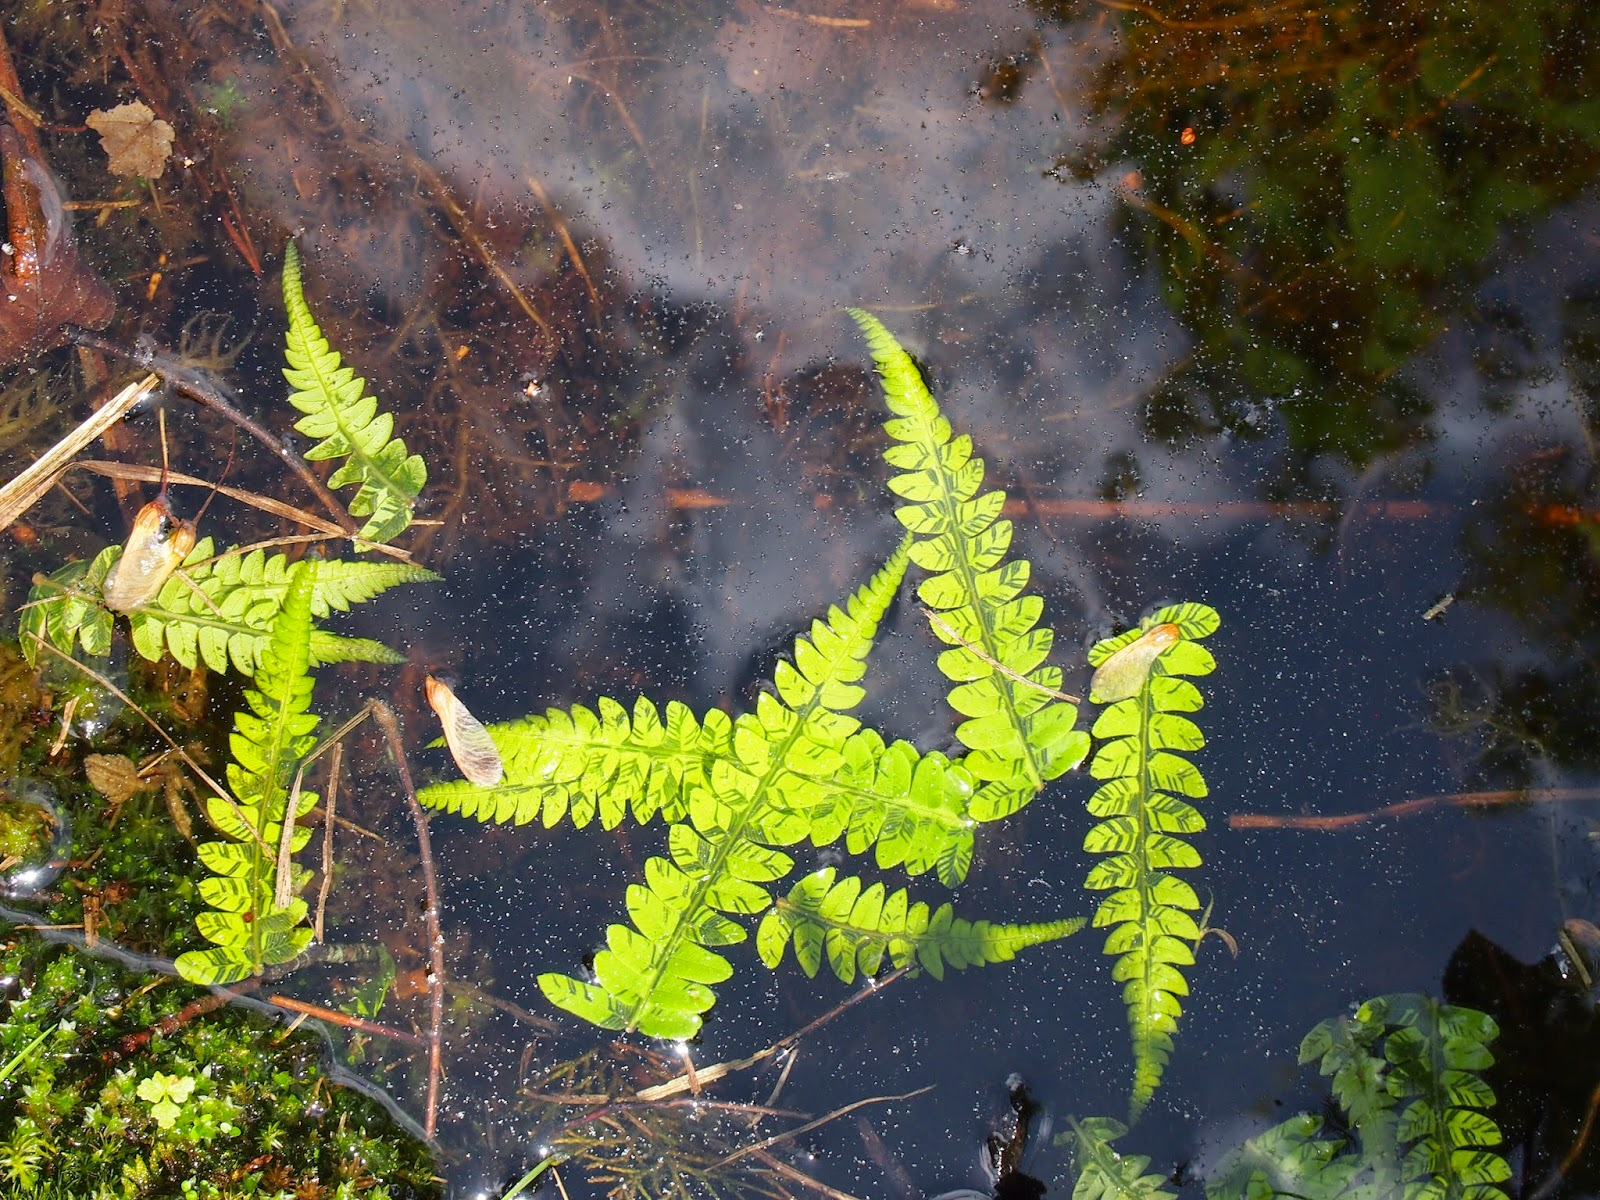 Ferns in the water at the Rhododendron Sanctuary